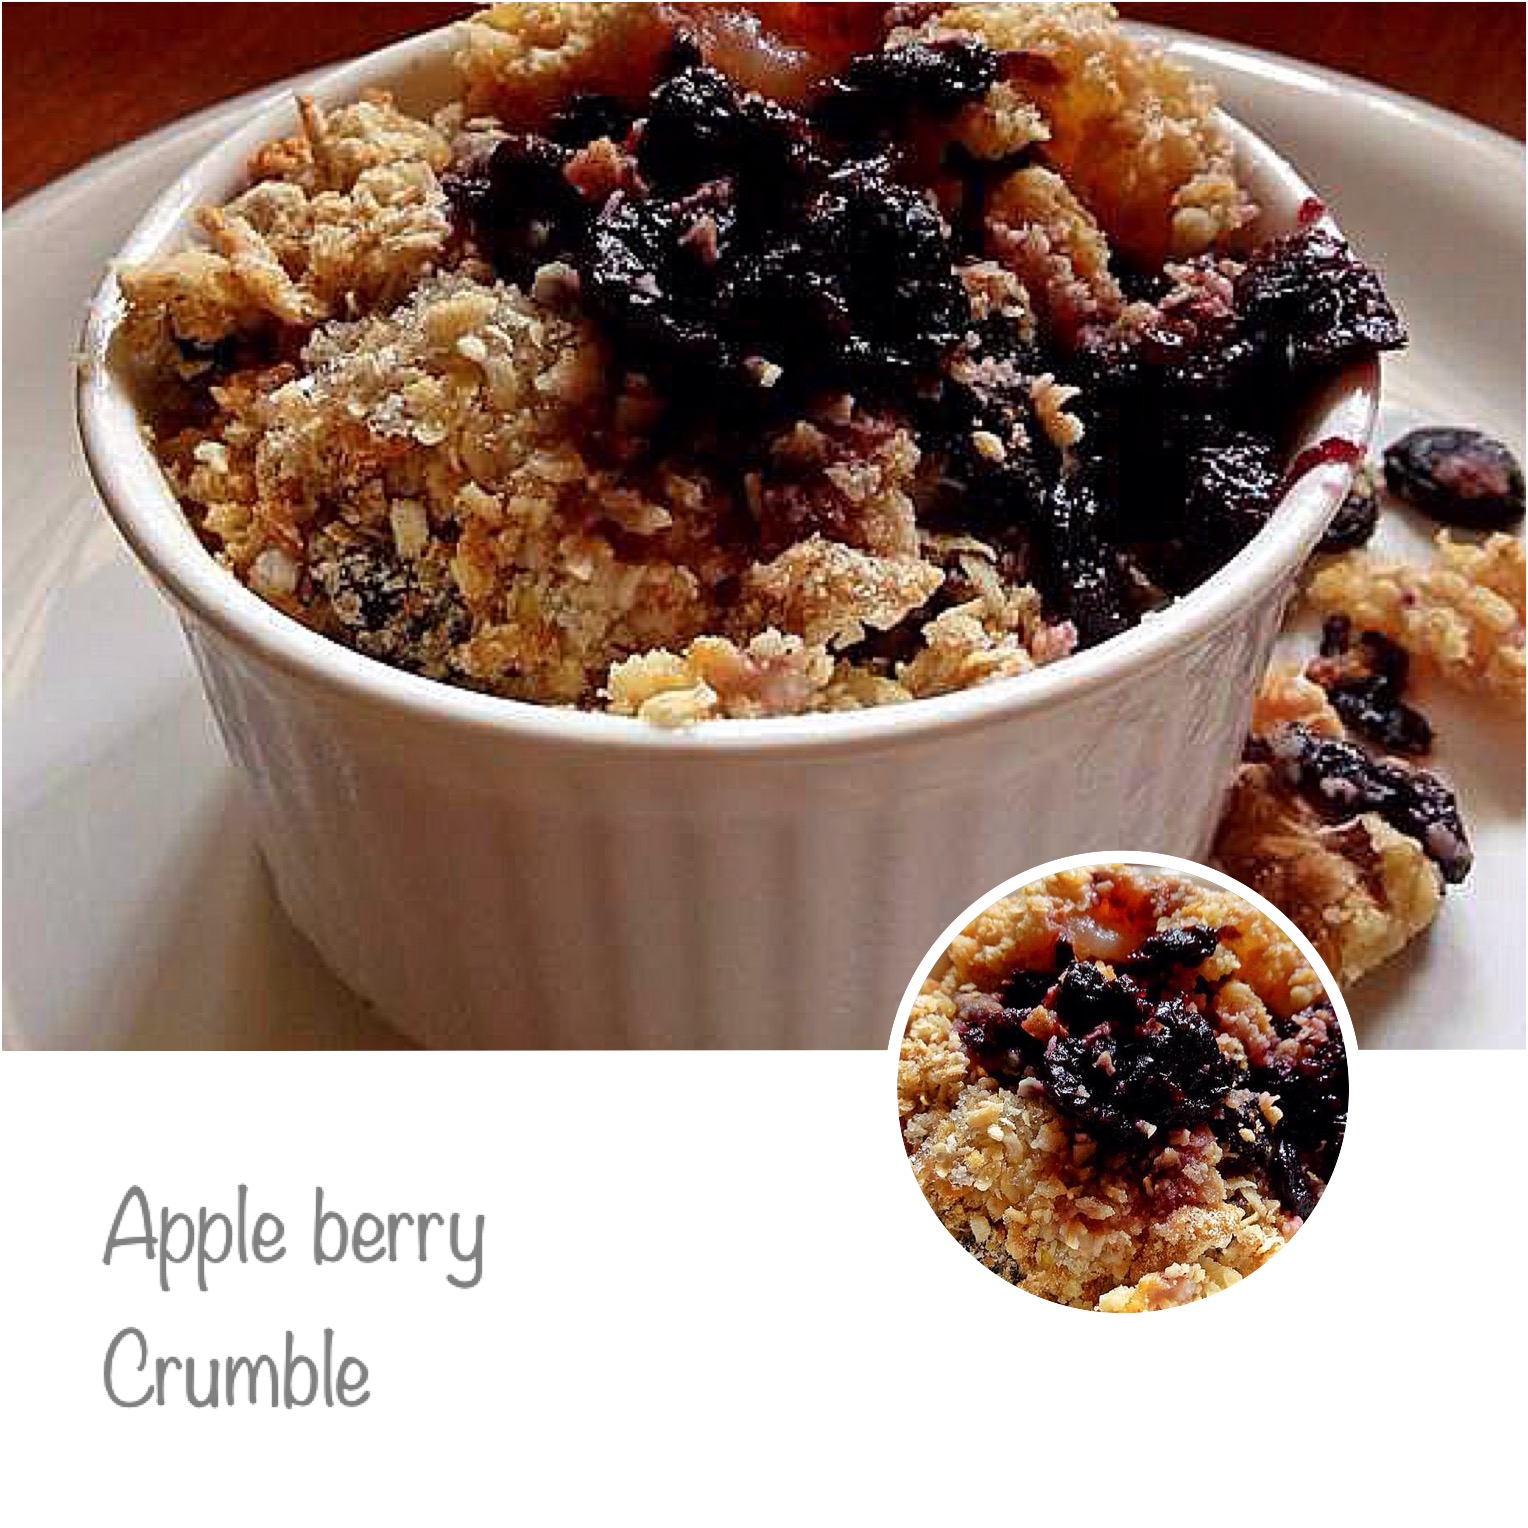 Your Everyday Cook: APPLE BERRY CRUMBLE